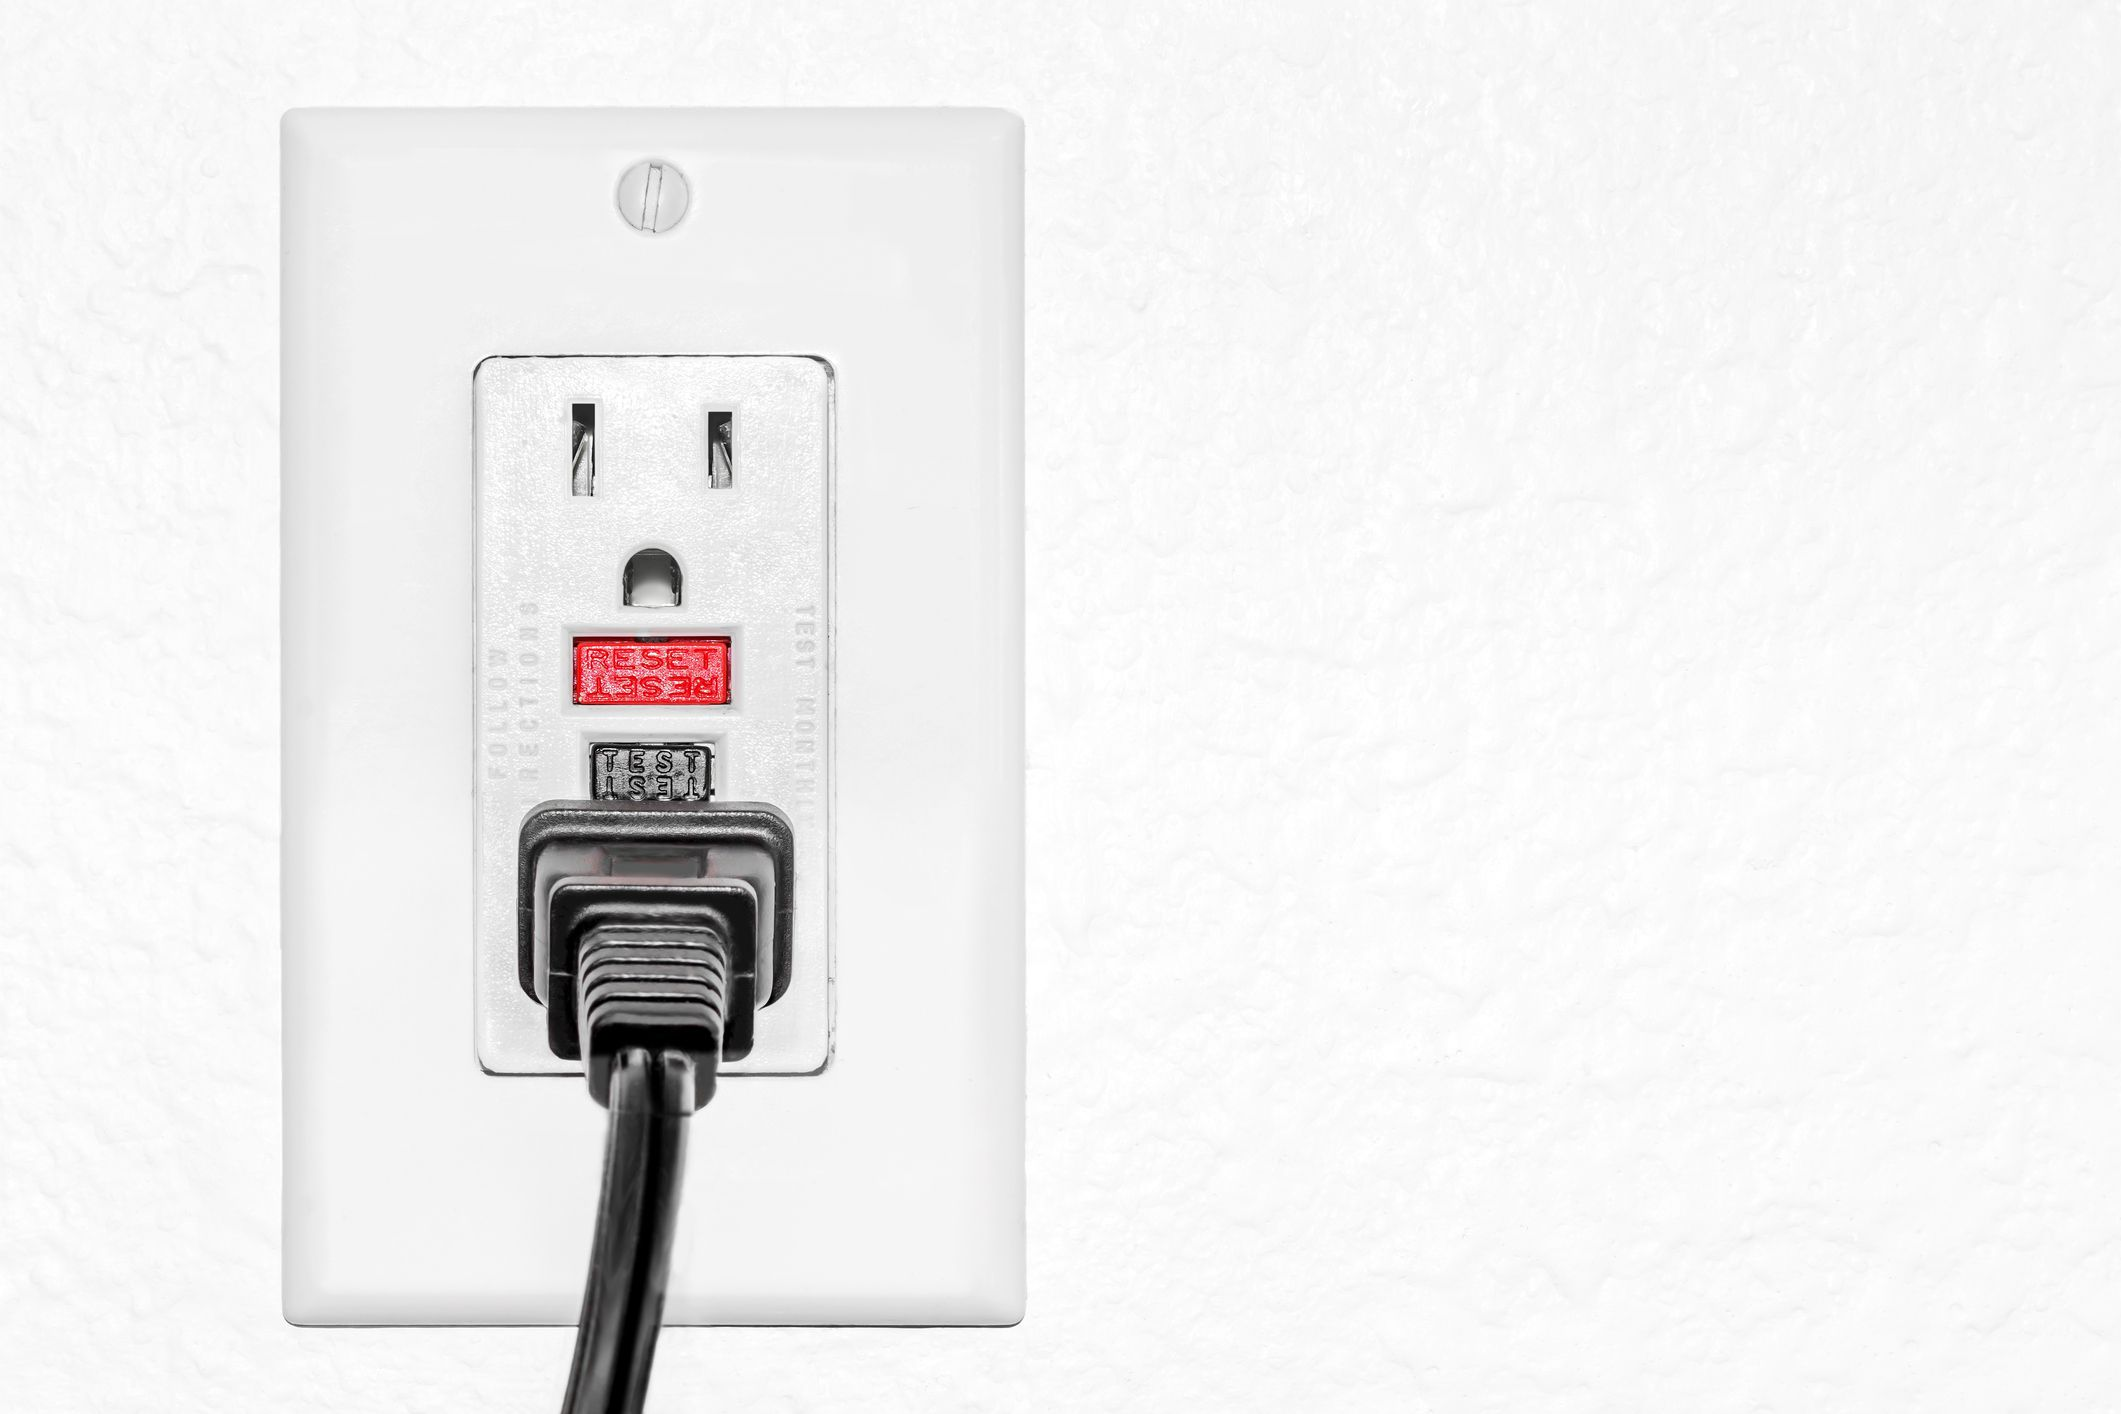 8 Common Electrical Mistakes Homeowners Make Wiring A New Outlet Failing To Install Gfci